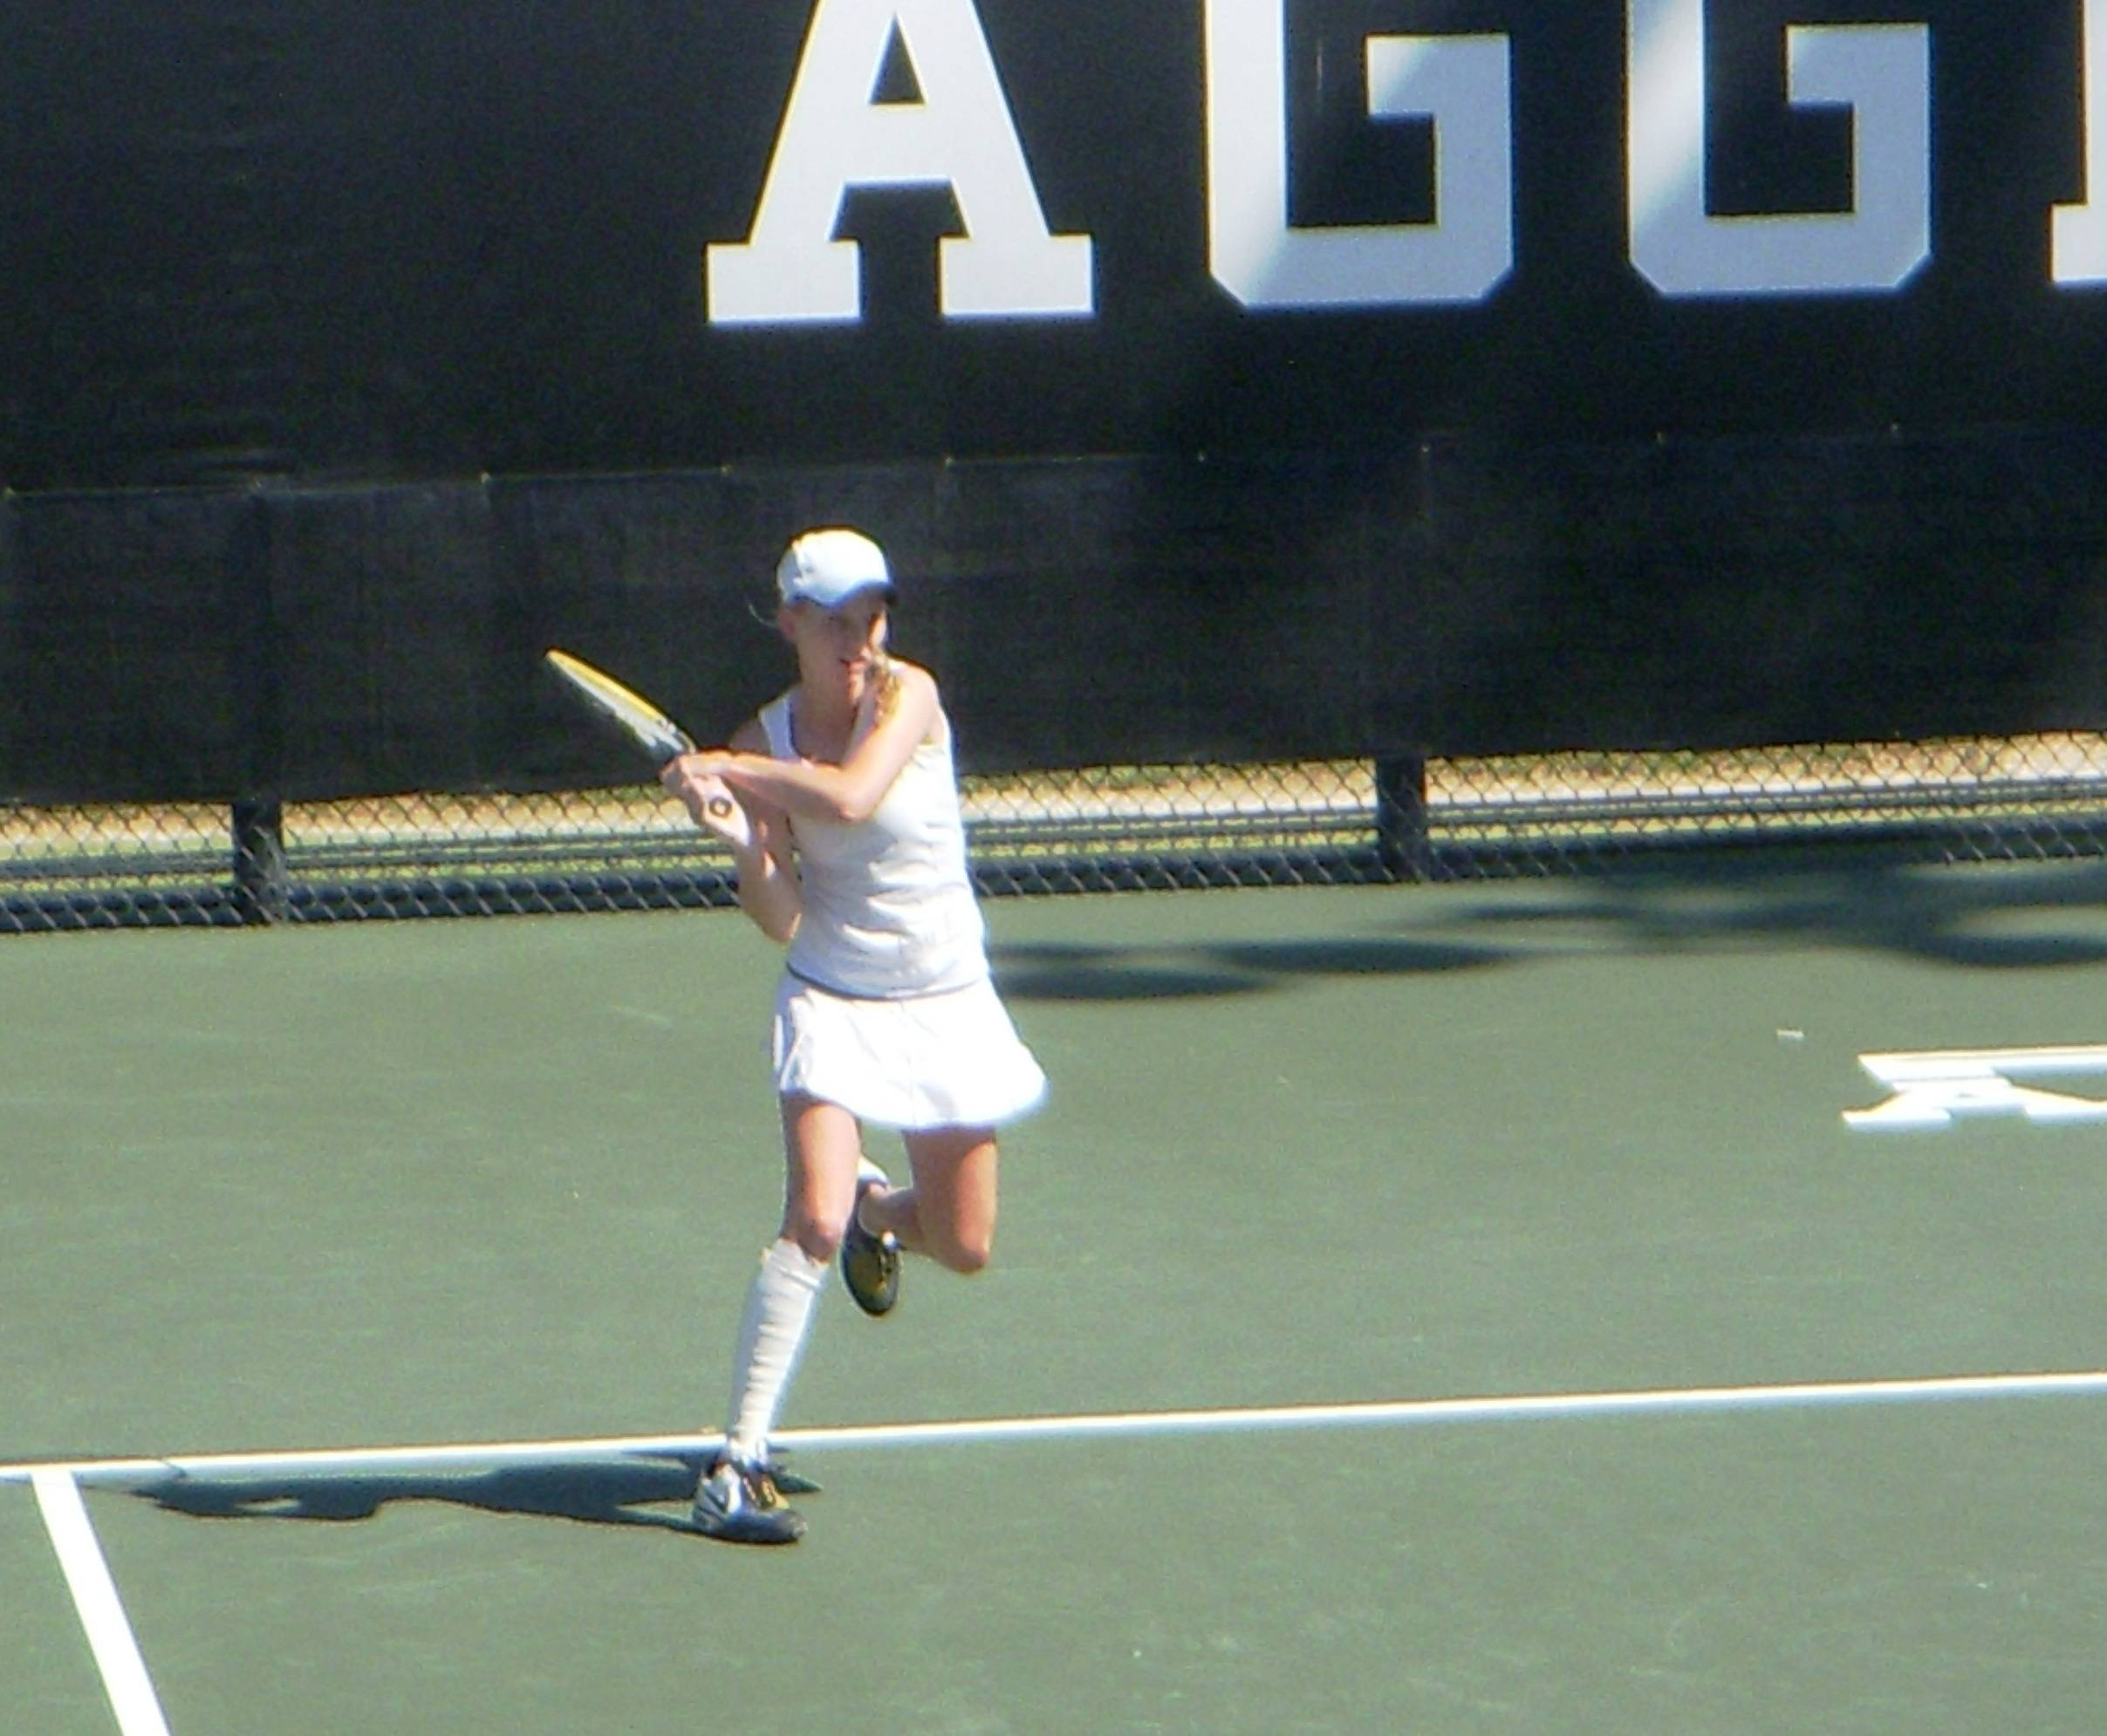 Katie clinched the third point for the Seminoles